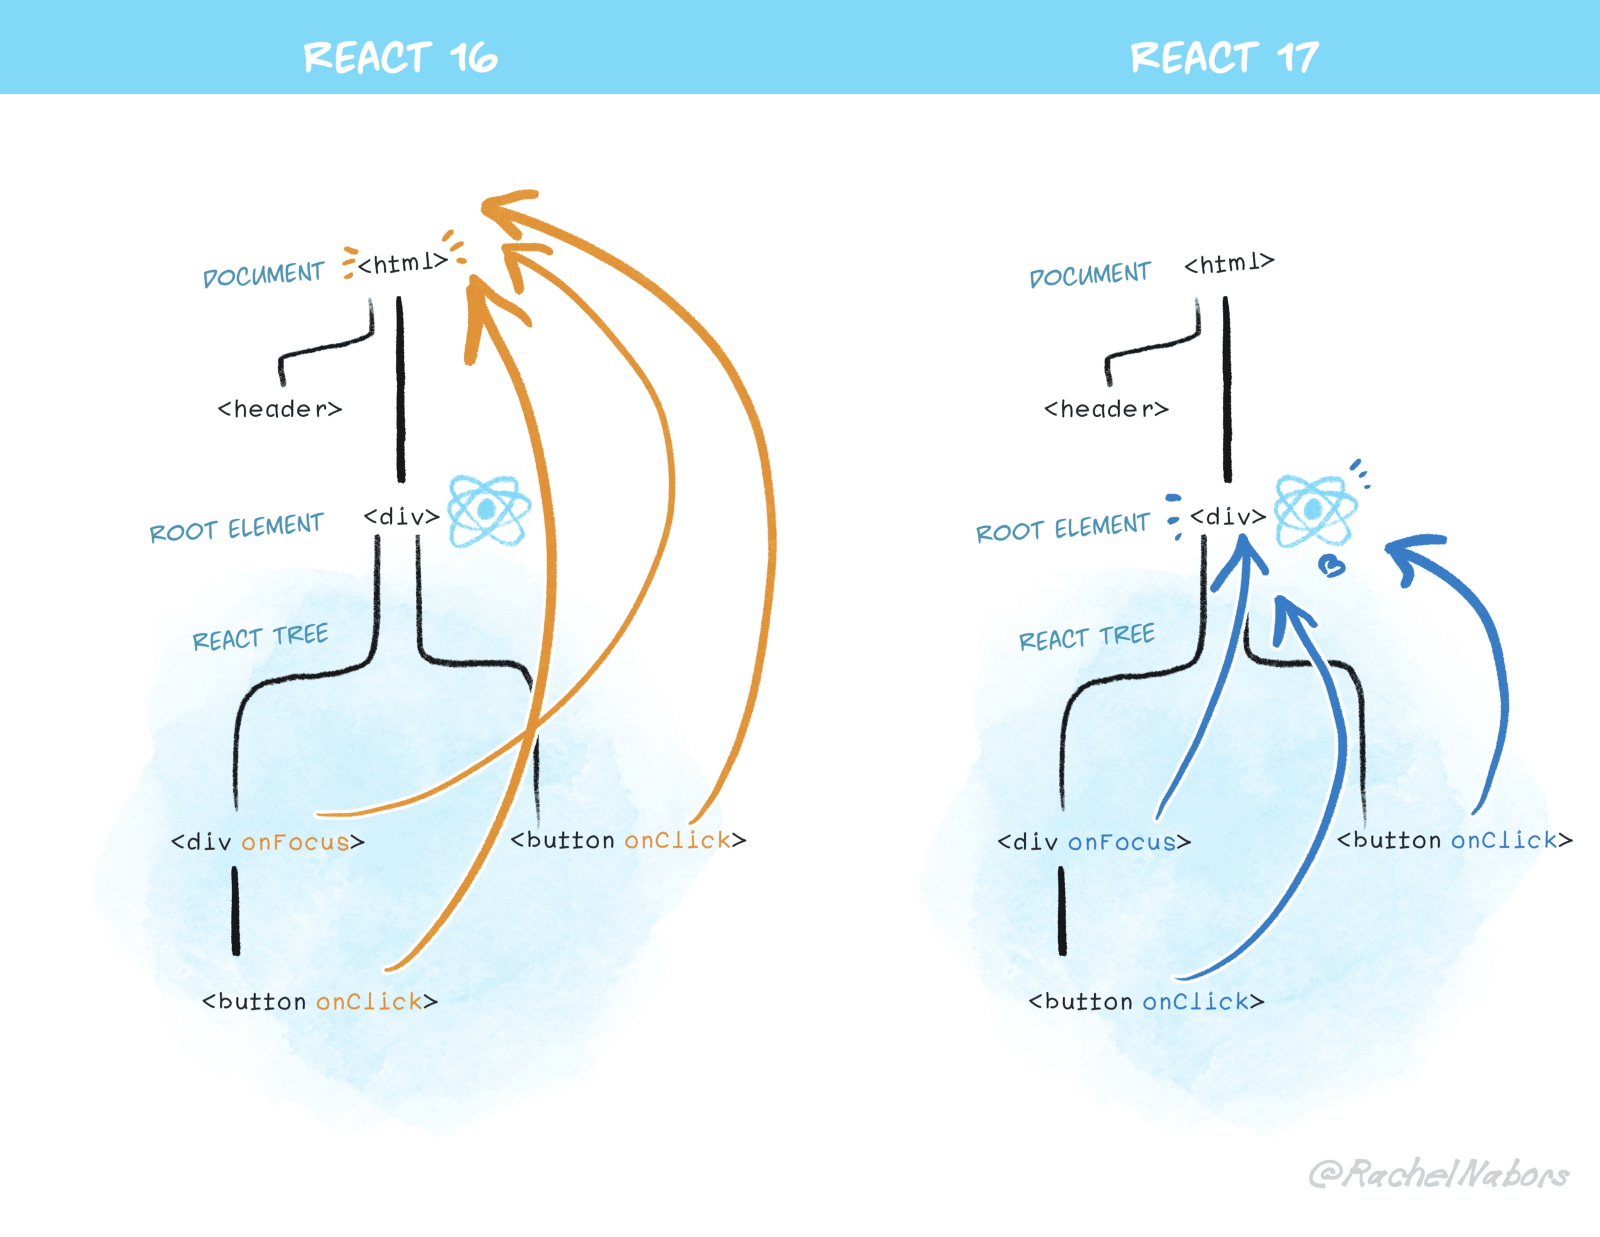 Image displaying React's bubbling phase ending at the root level in React Version 17 but it ends at Window/Document in React Version 16 or lower